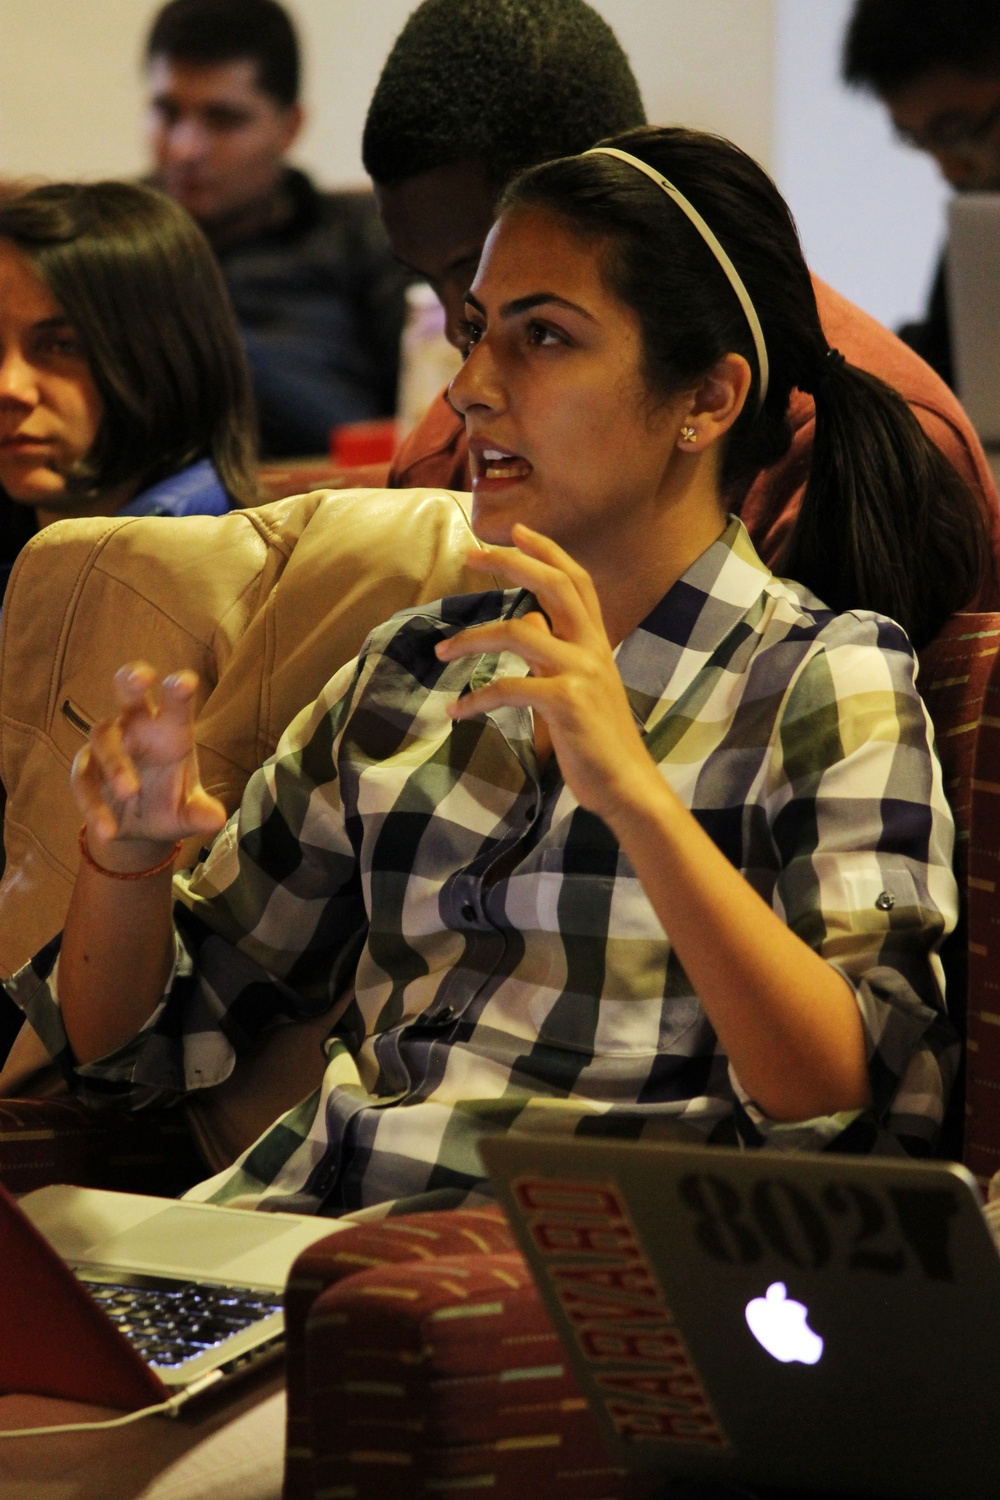 Ava Nasrollahzadeh '16 poses a question about HBX at the UC meeting on Sunday night in Ticknor Lounge. Nasrollahzadeh, UC chair of Student Relations, later presented the launch of the new UC website during the meeting.